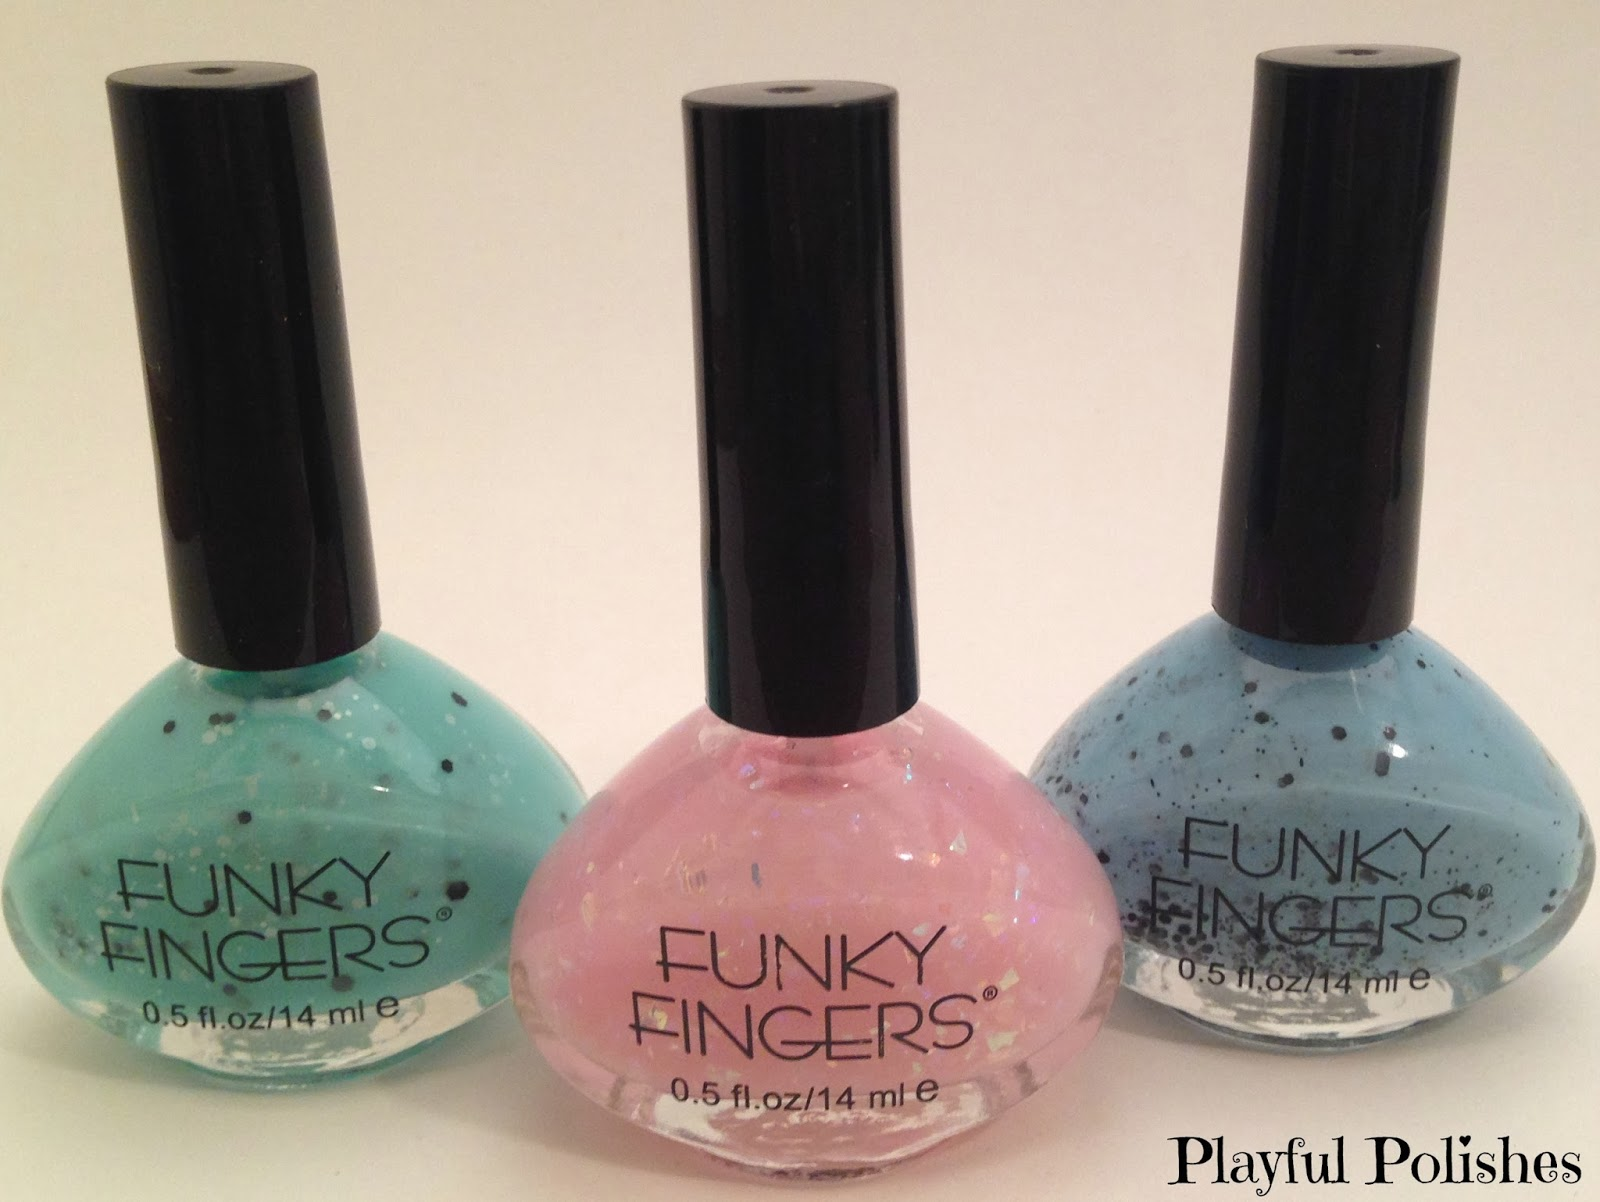 Playful Polishes: FUNKY FINGERS SWATCH & REVIEW